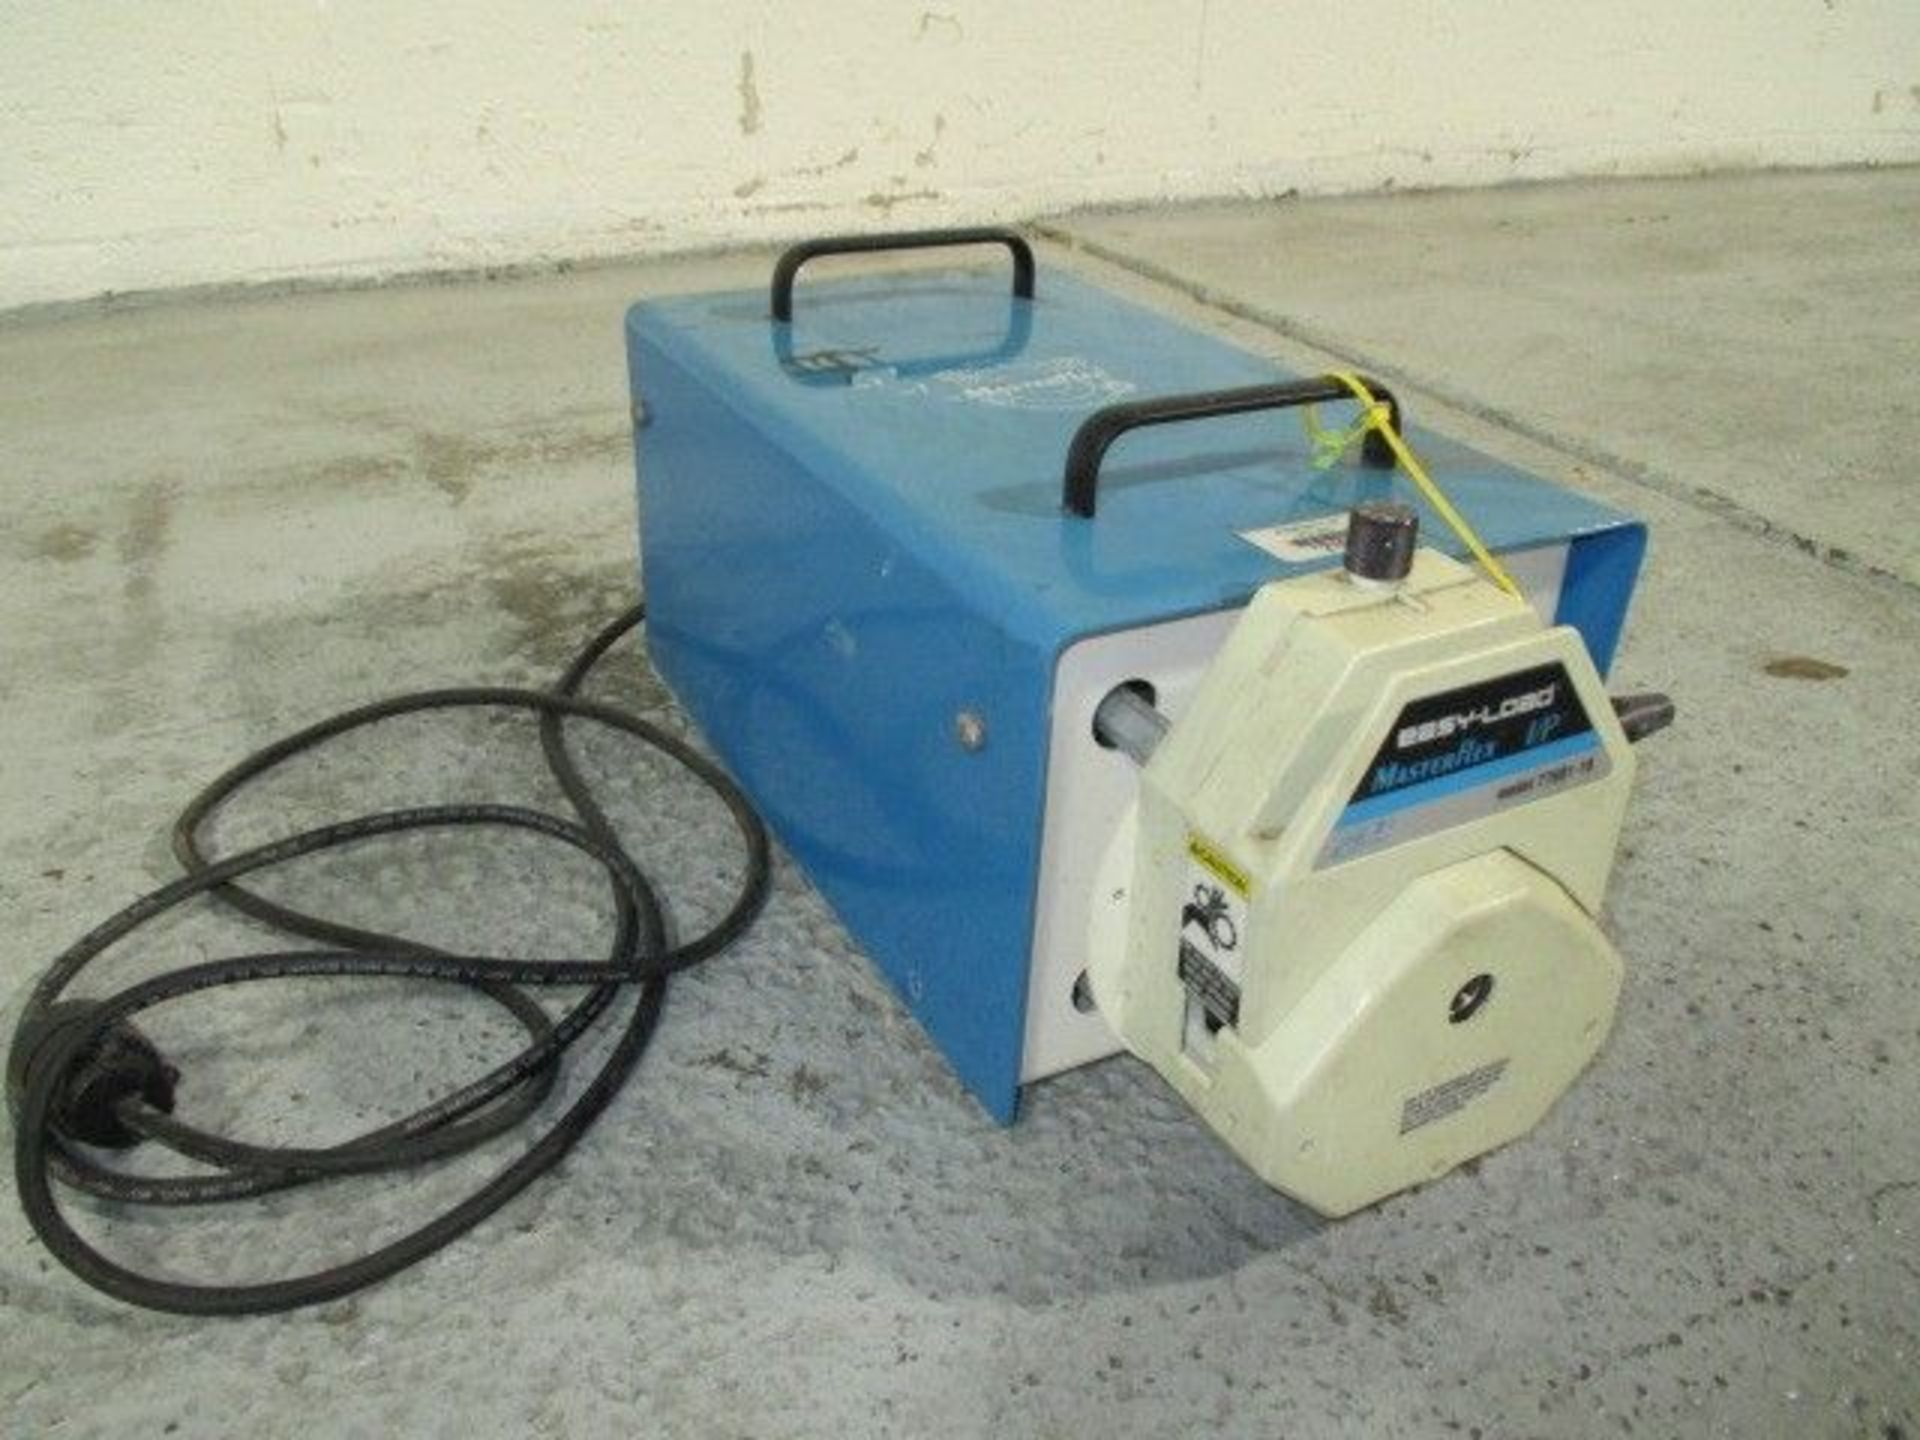 Lot 24 - Cole-Parmer peristalic pump, model 7529-10, masterflex design with model 7549-32 variable speed